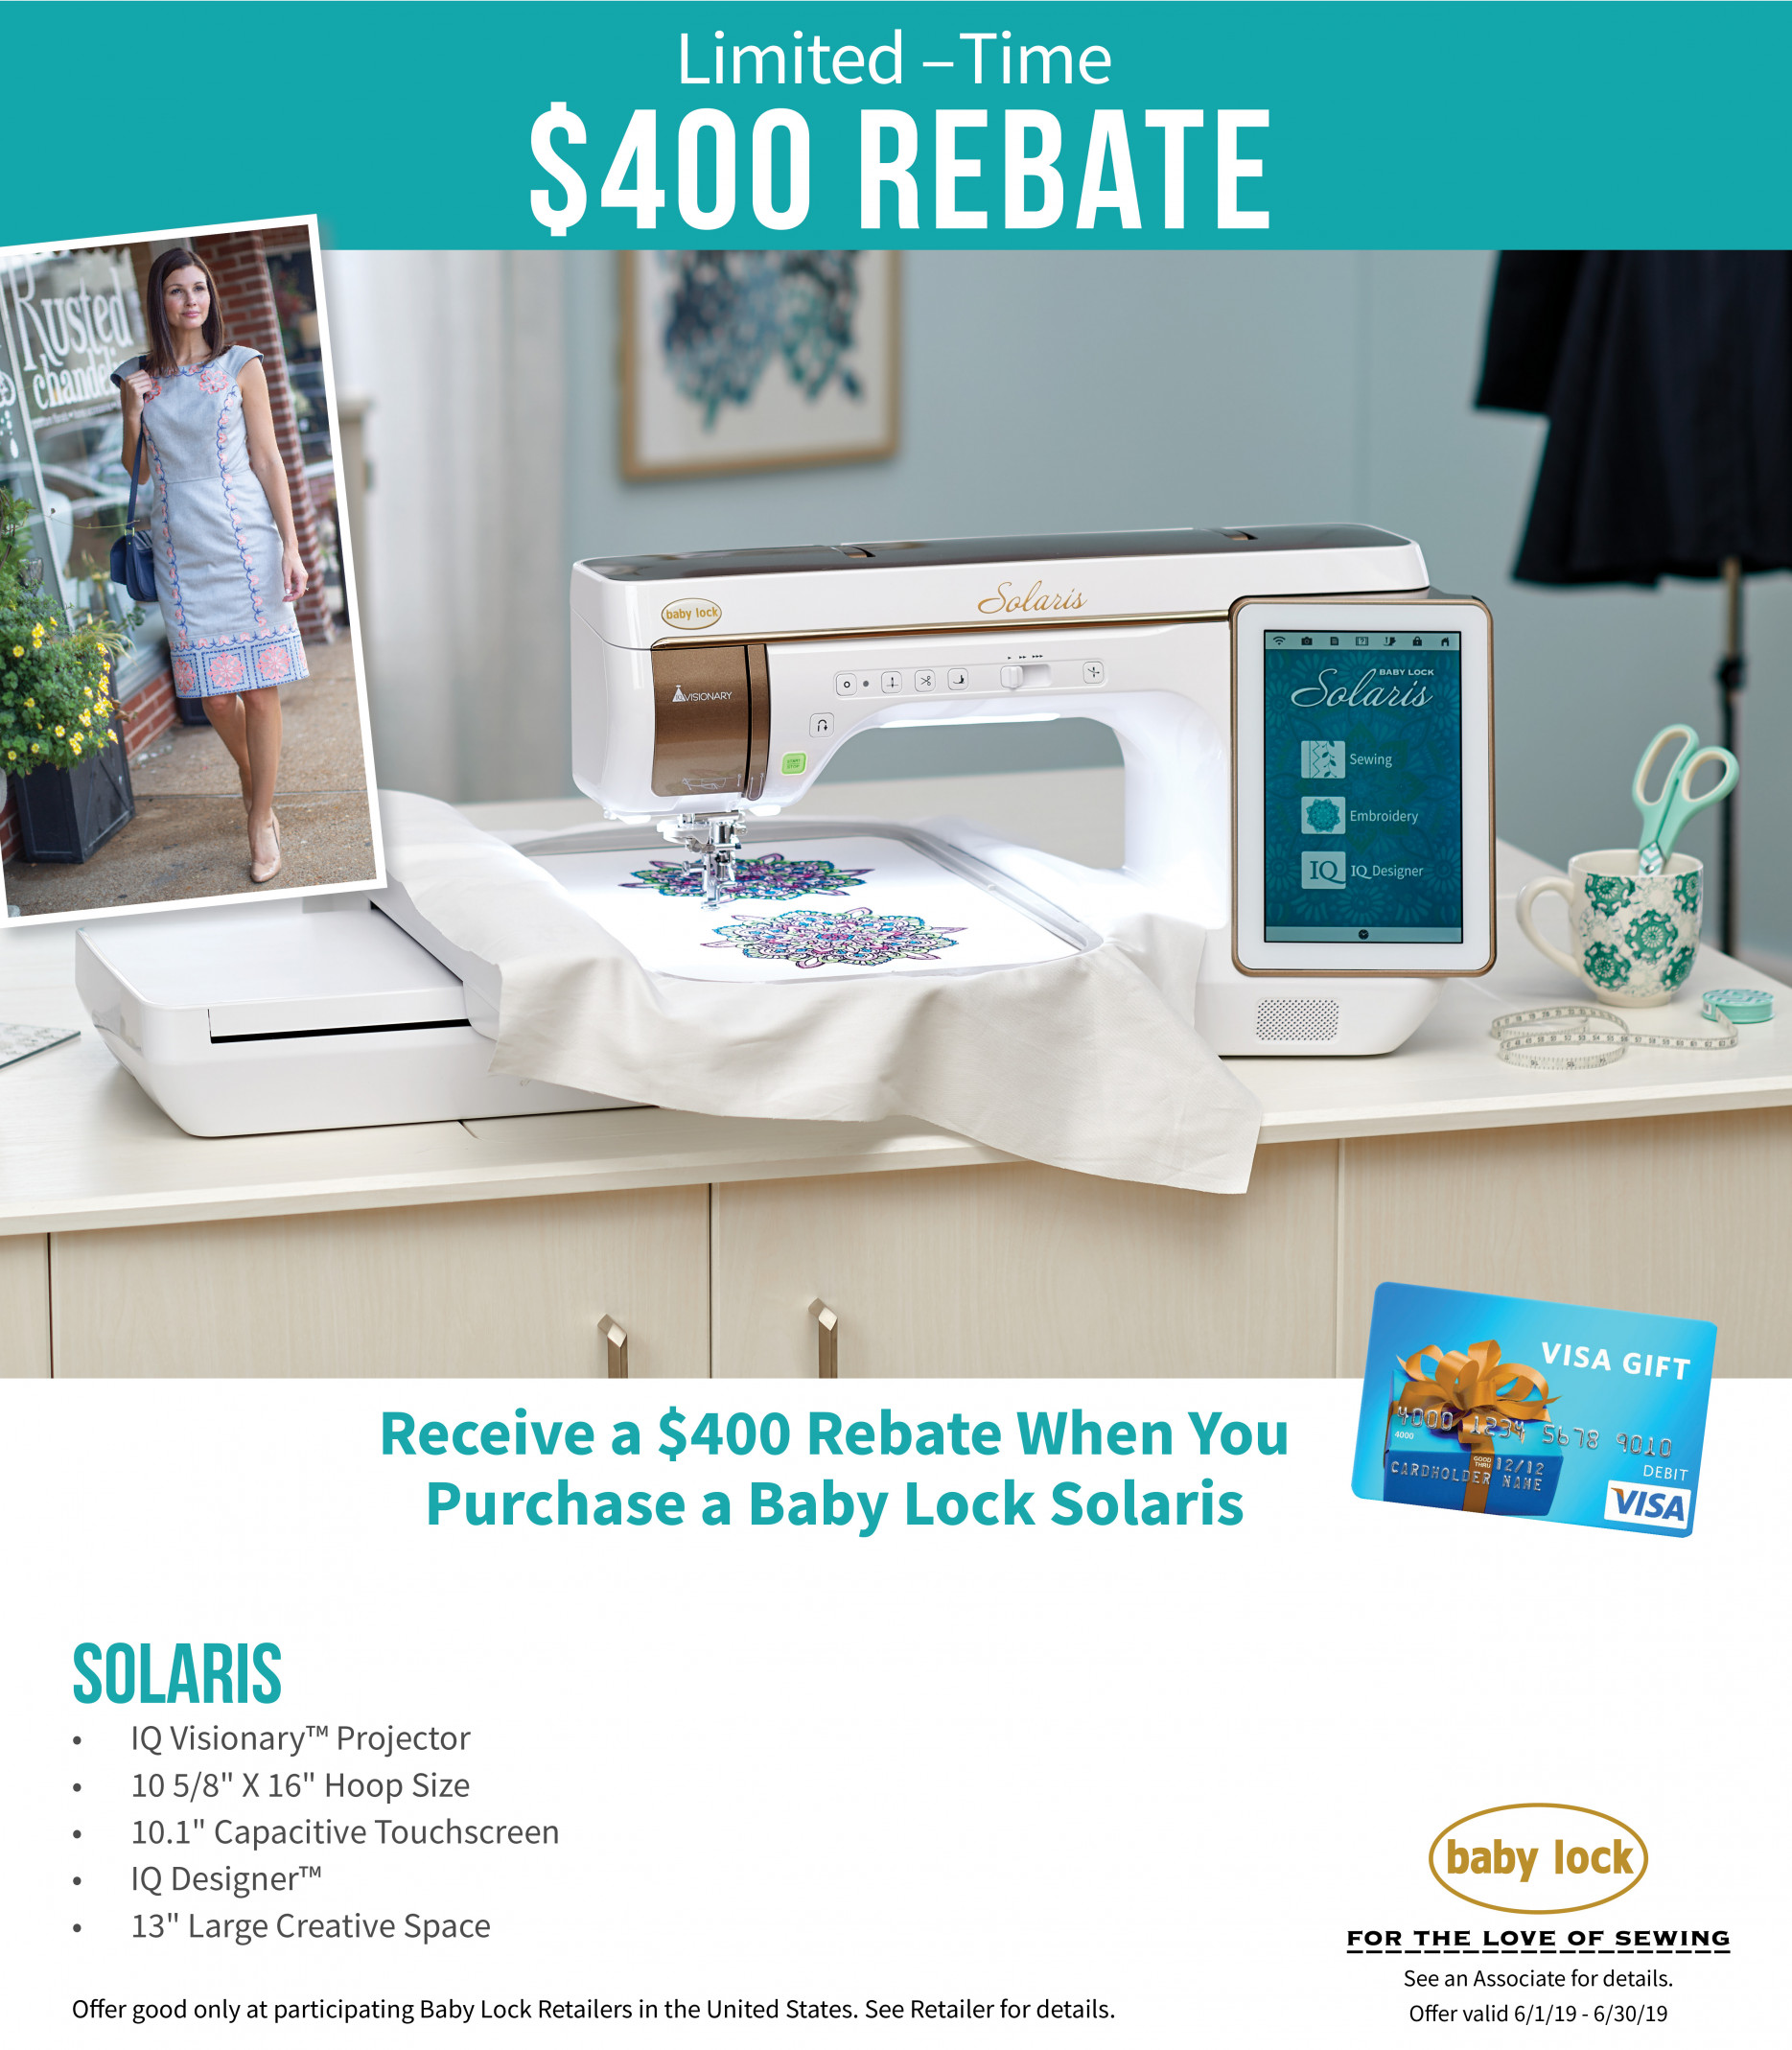 The Solaris continues to amaze with all it can do! - Receive a $400 rebate from Baby Lock in June.